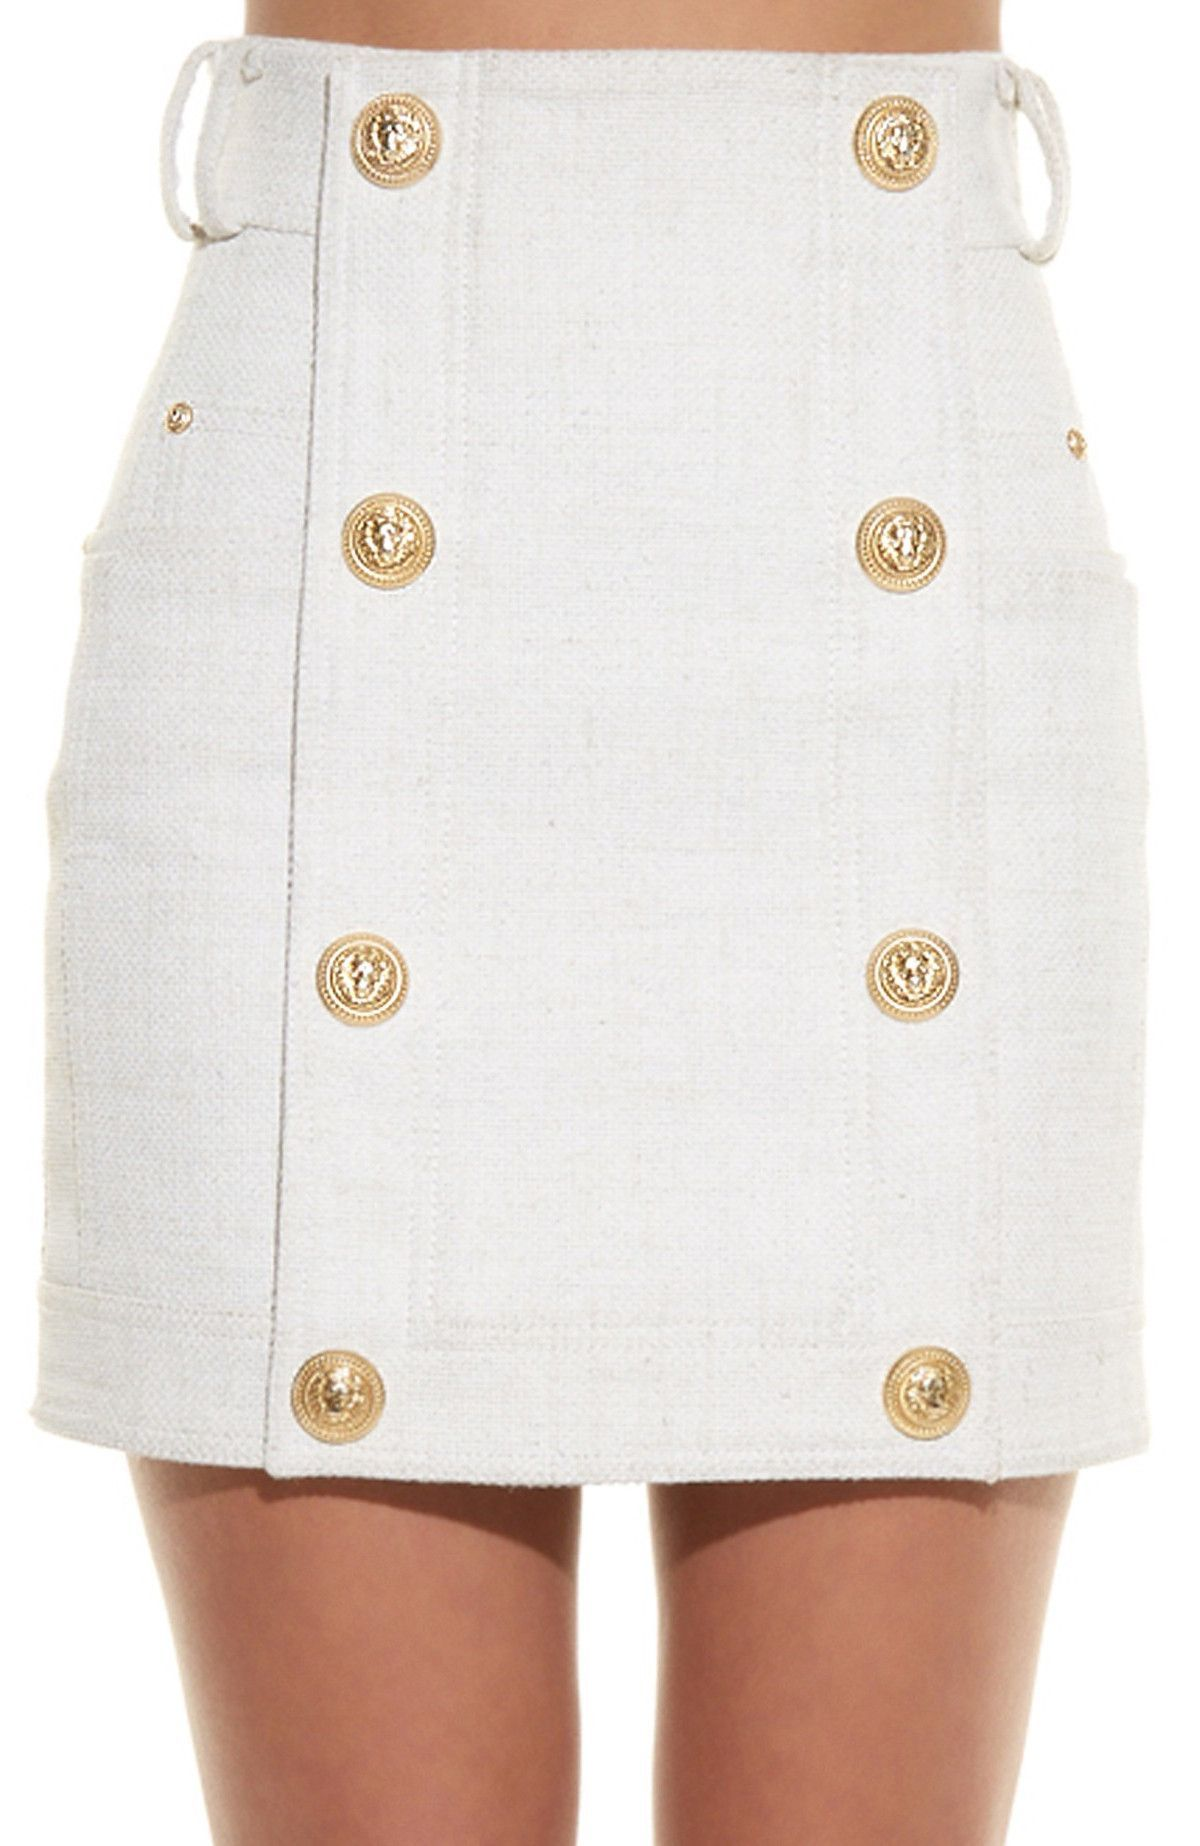 Button-Embellished Mini Skirt, White in 2018   CLOTHING   Pinterest ... c0f9c806a8